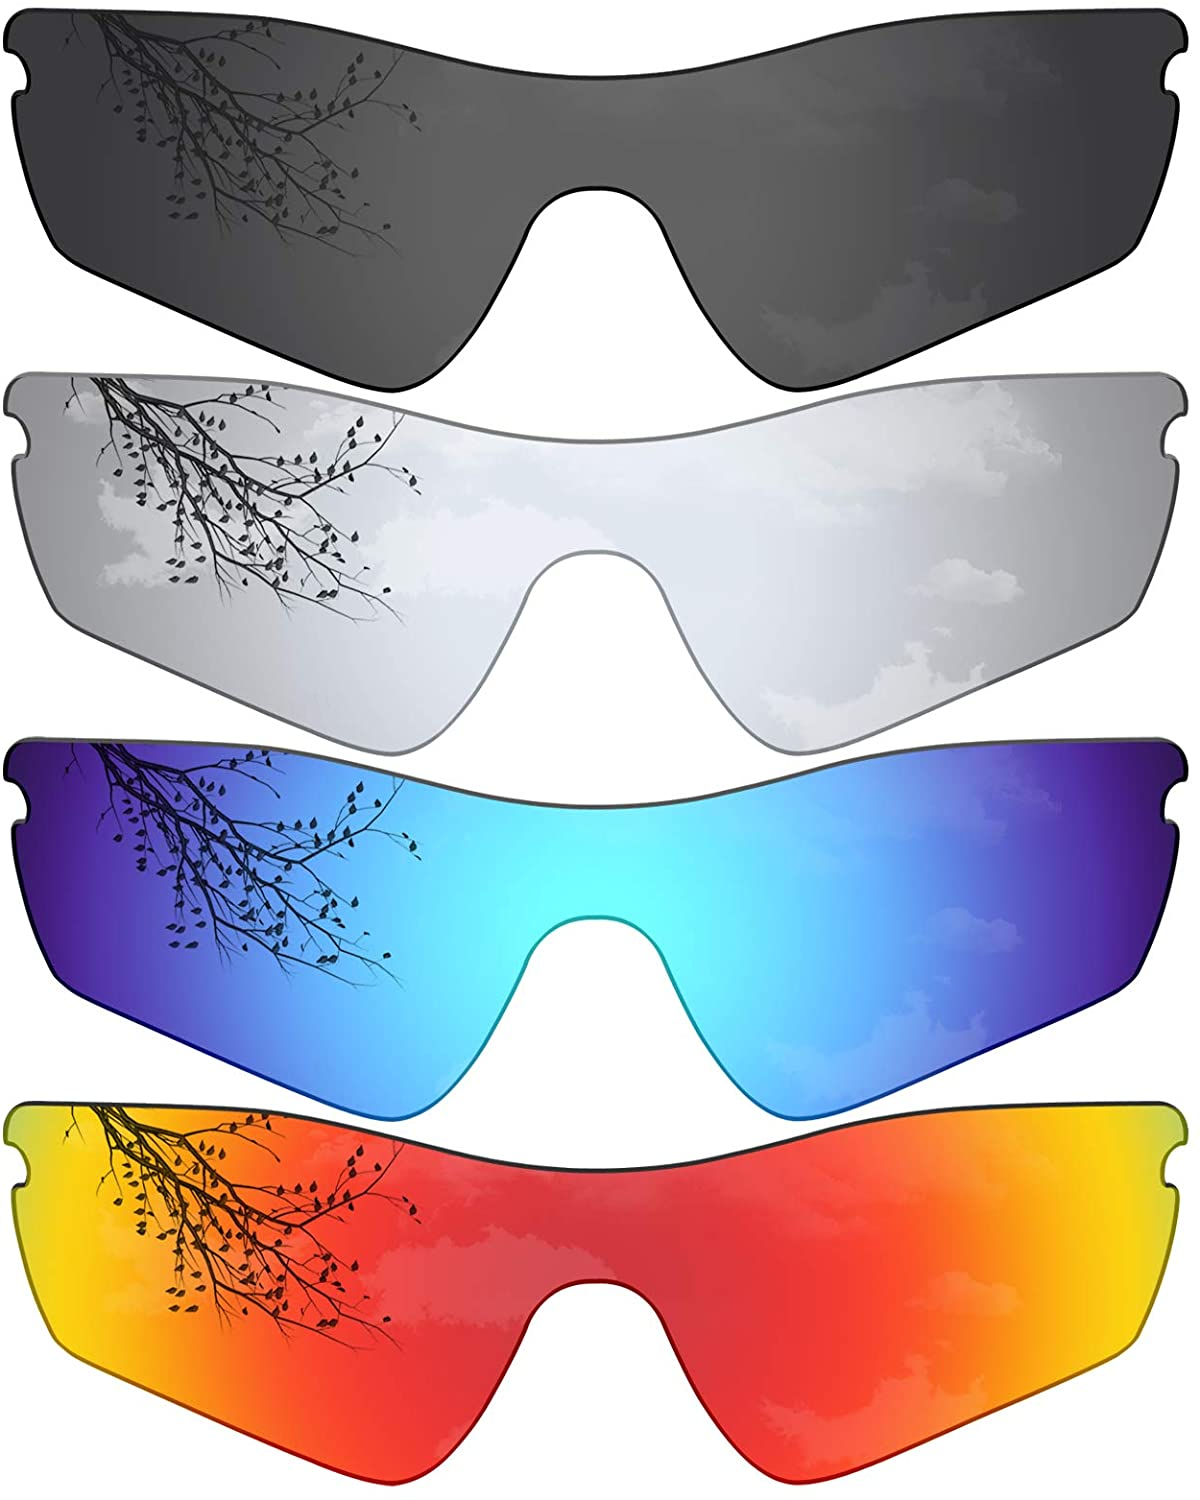 StaySoft Polarized Replacement Lenses for Oakley Radar Path Sunglasses - Solid Black + Titanium + Sky Blue + Ocean Red